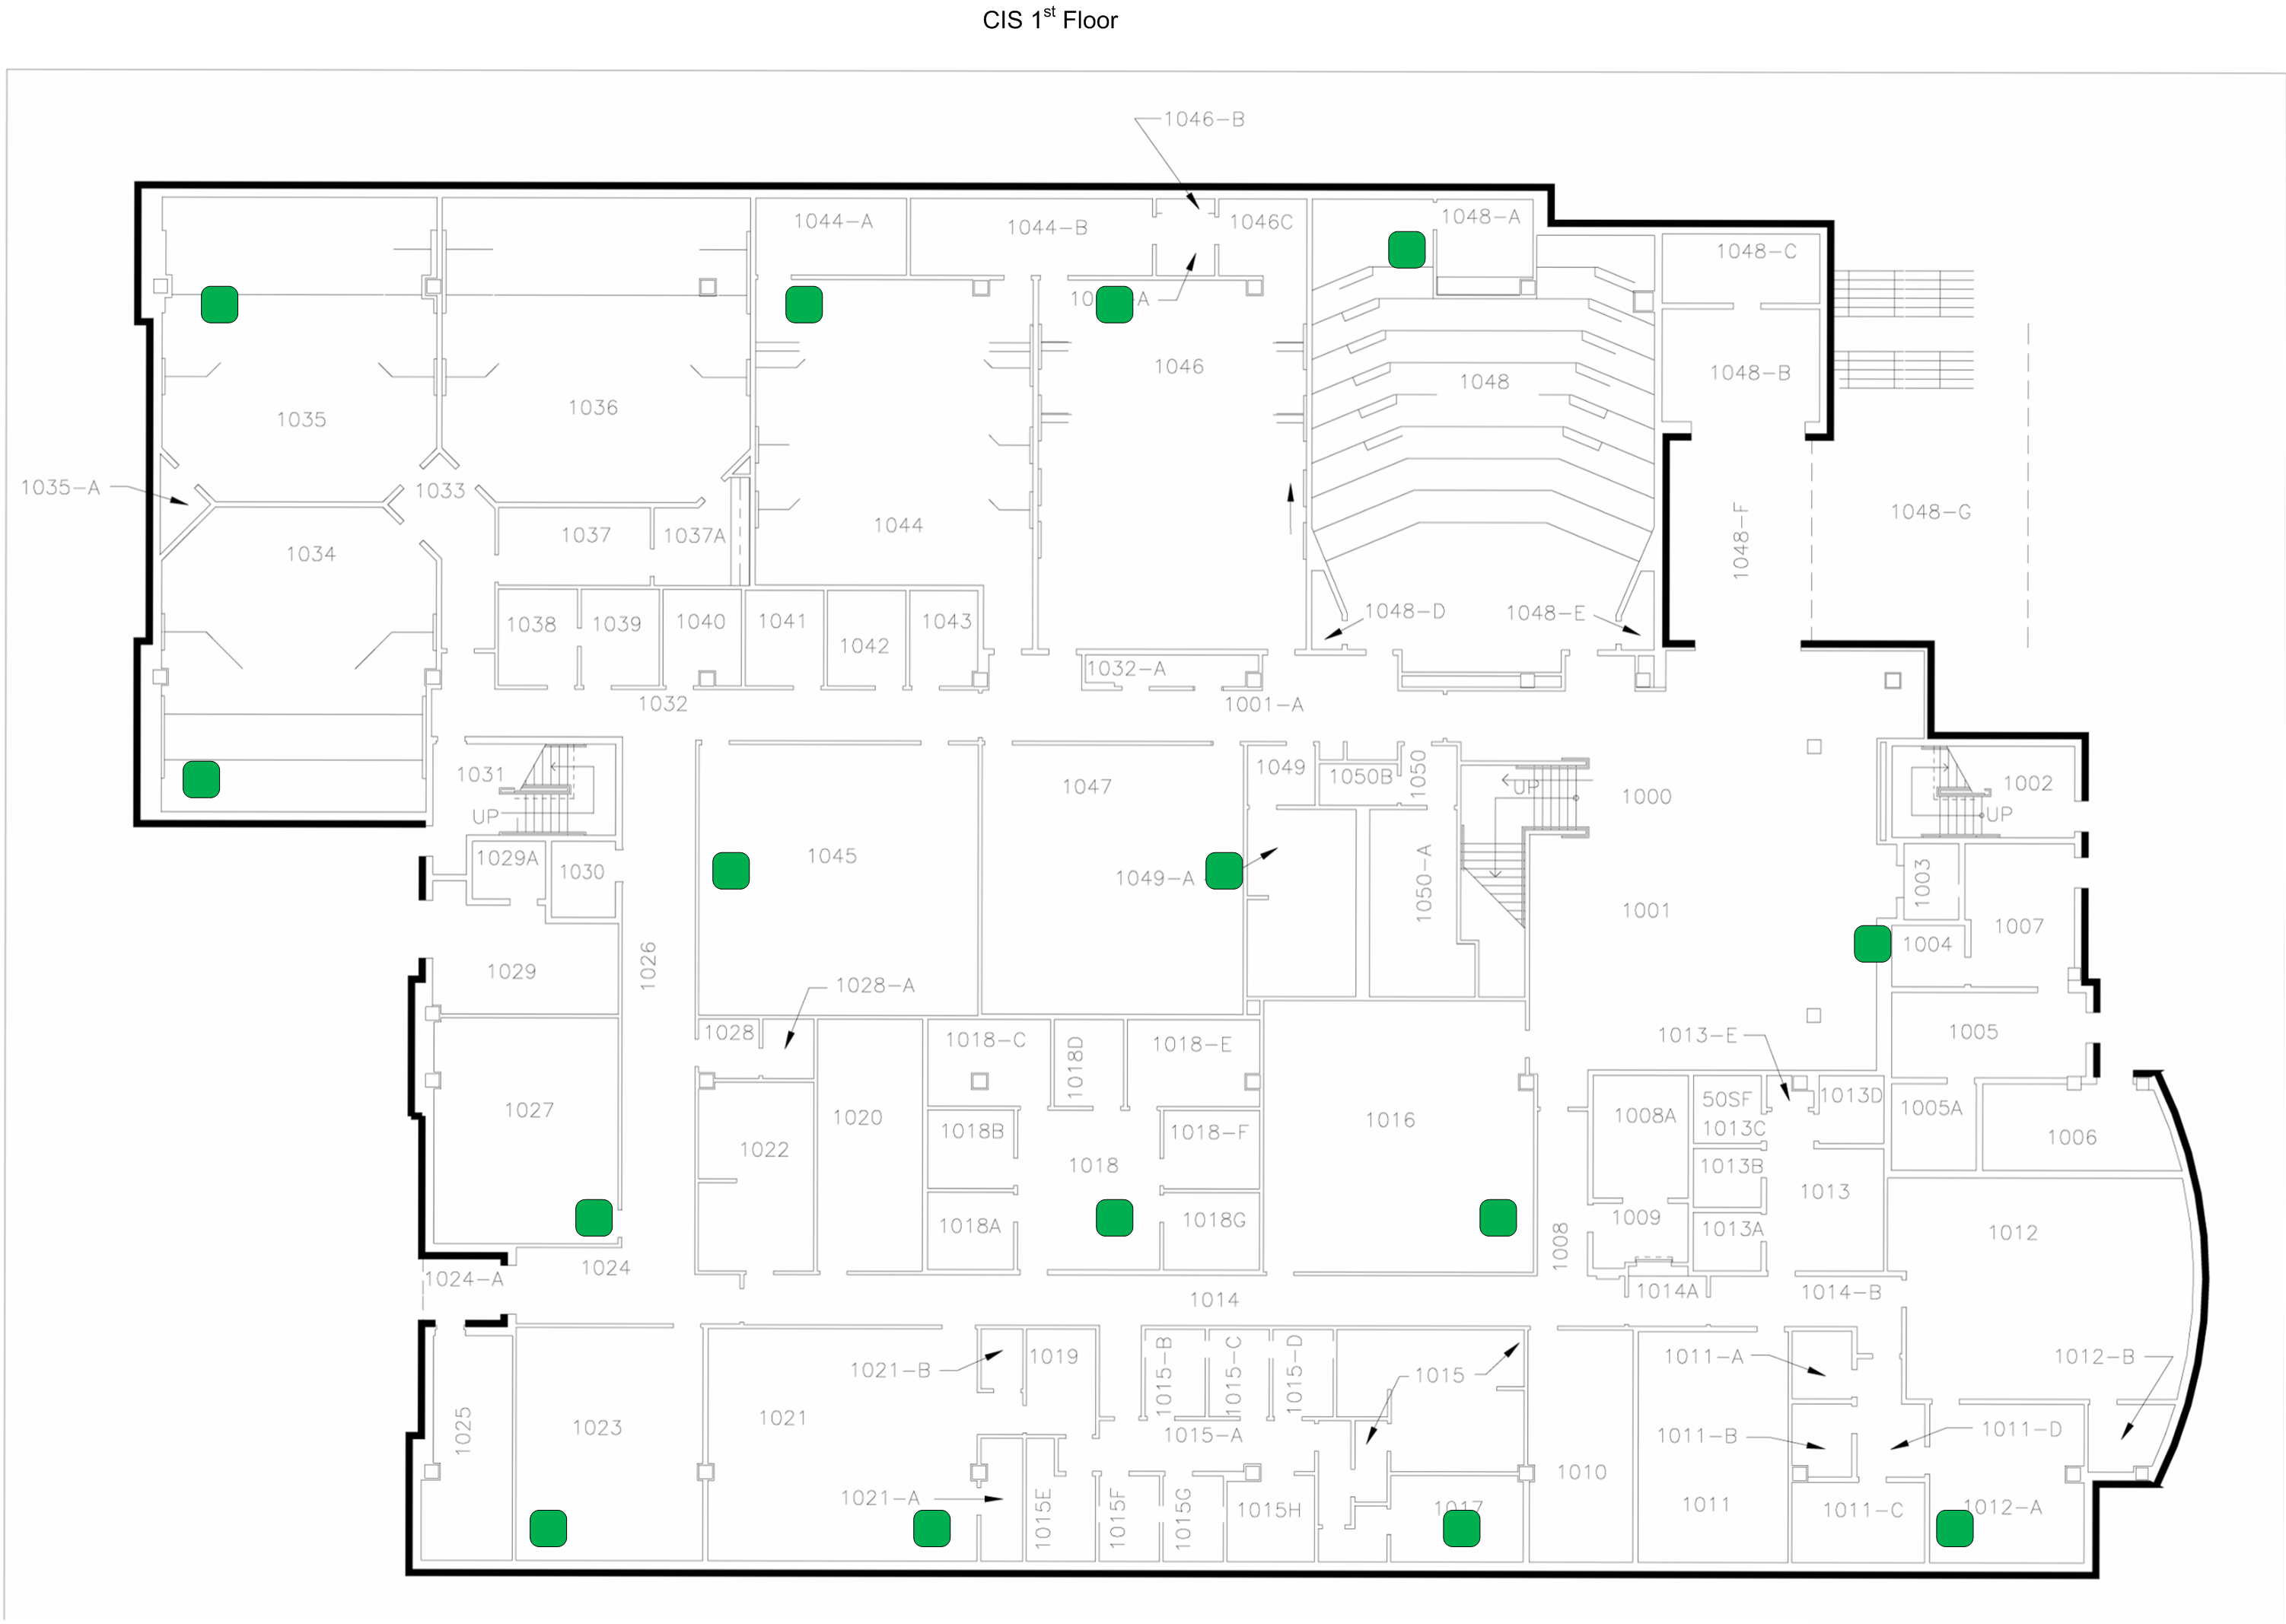 USF Information Technology - Usf location map